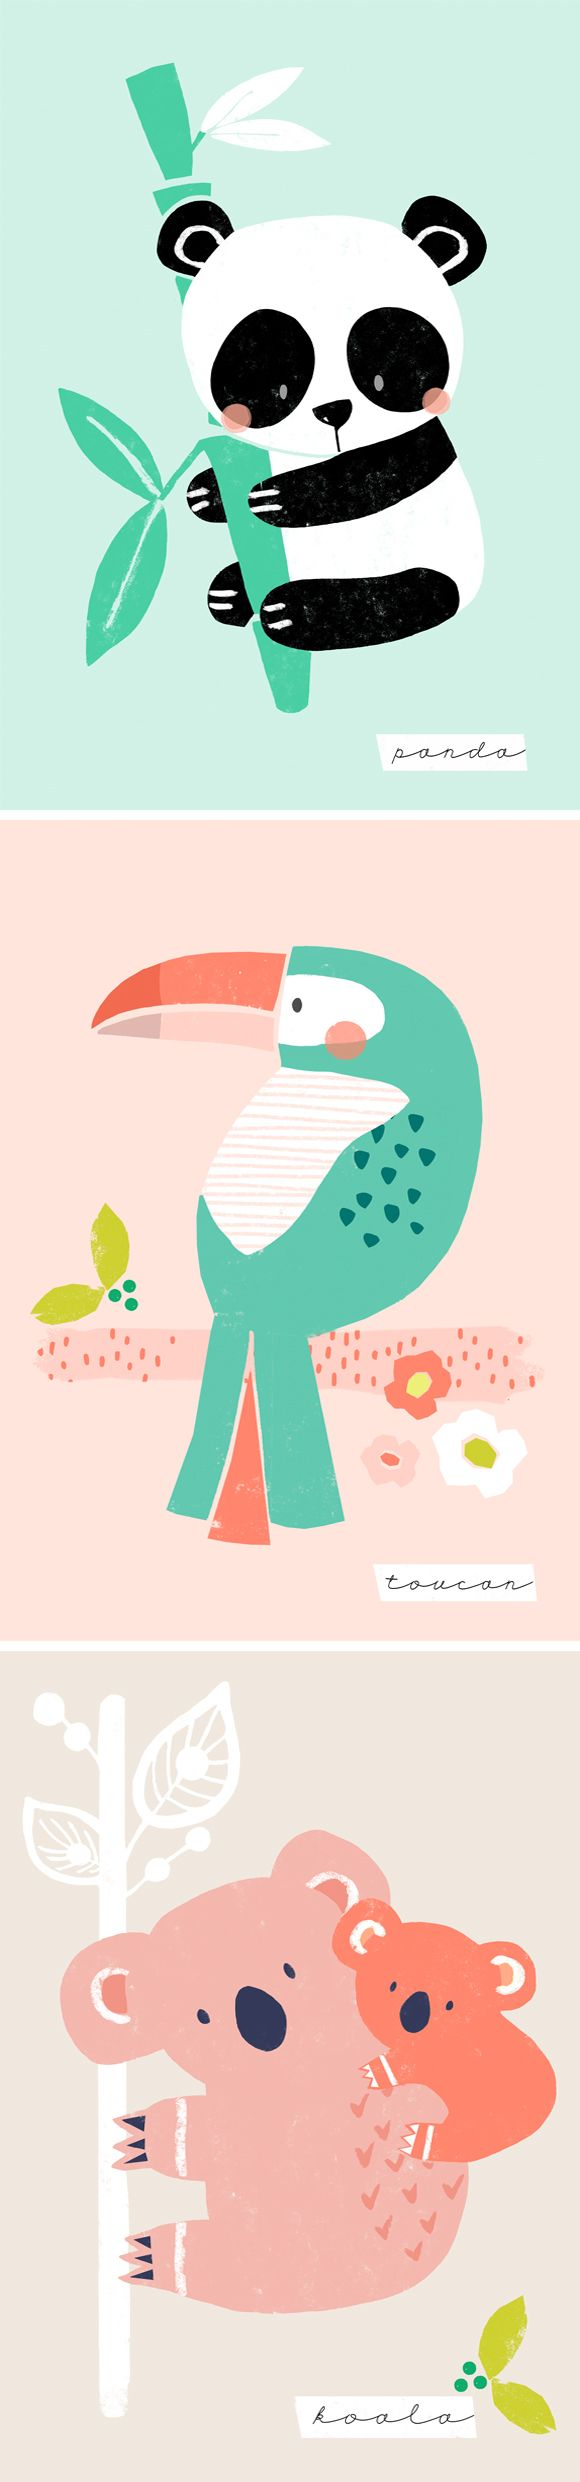 wendy kendall designs – freelance surface pattern designer » its a jungle